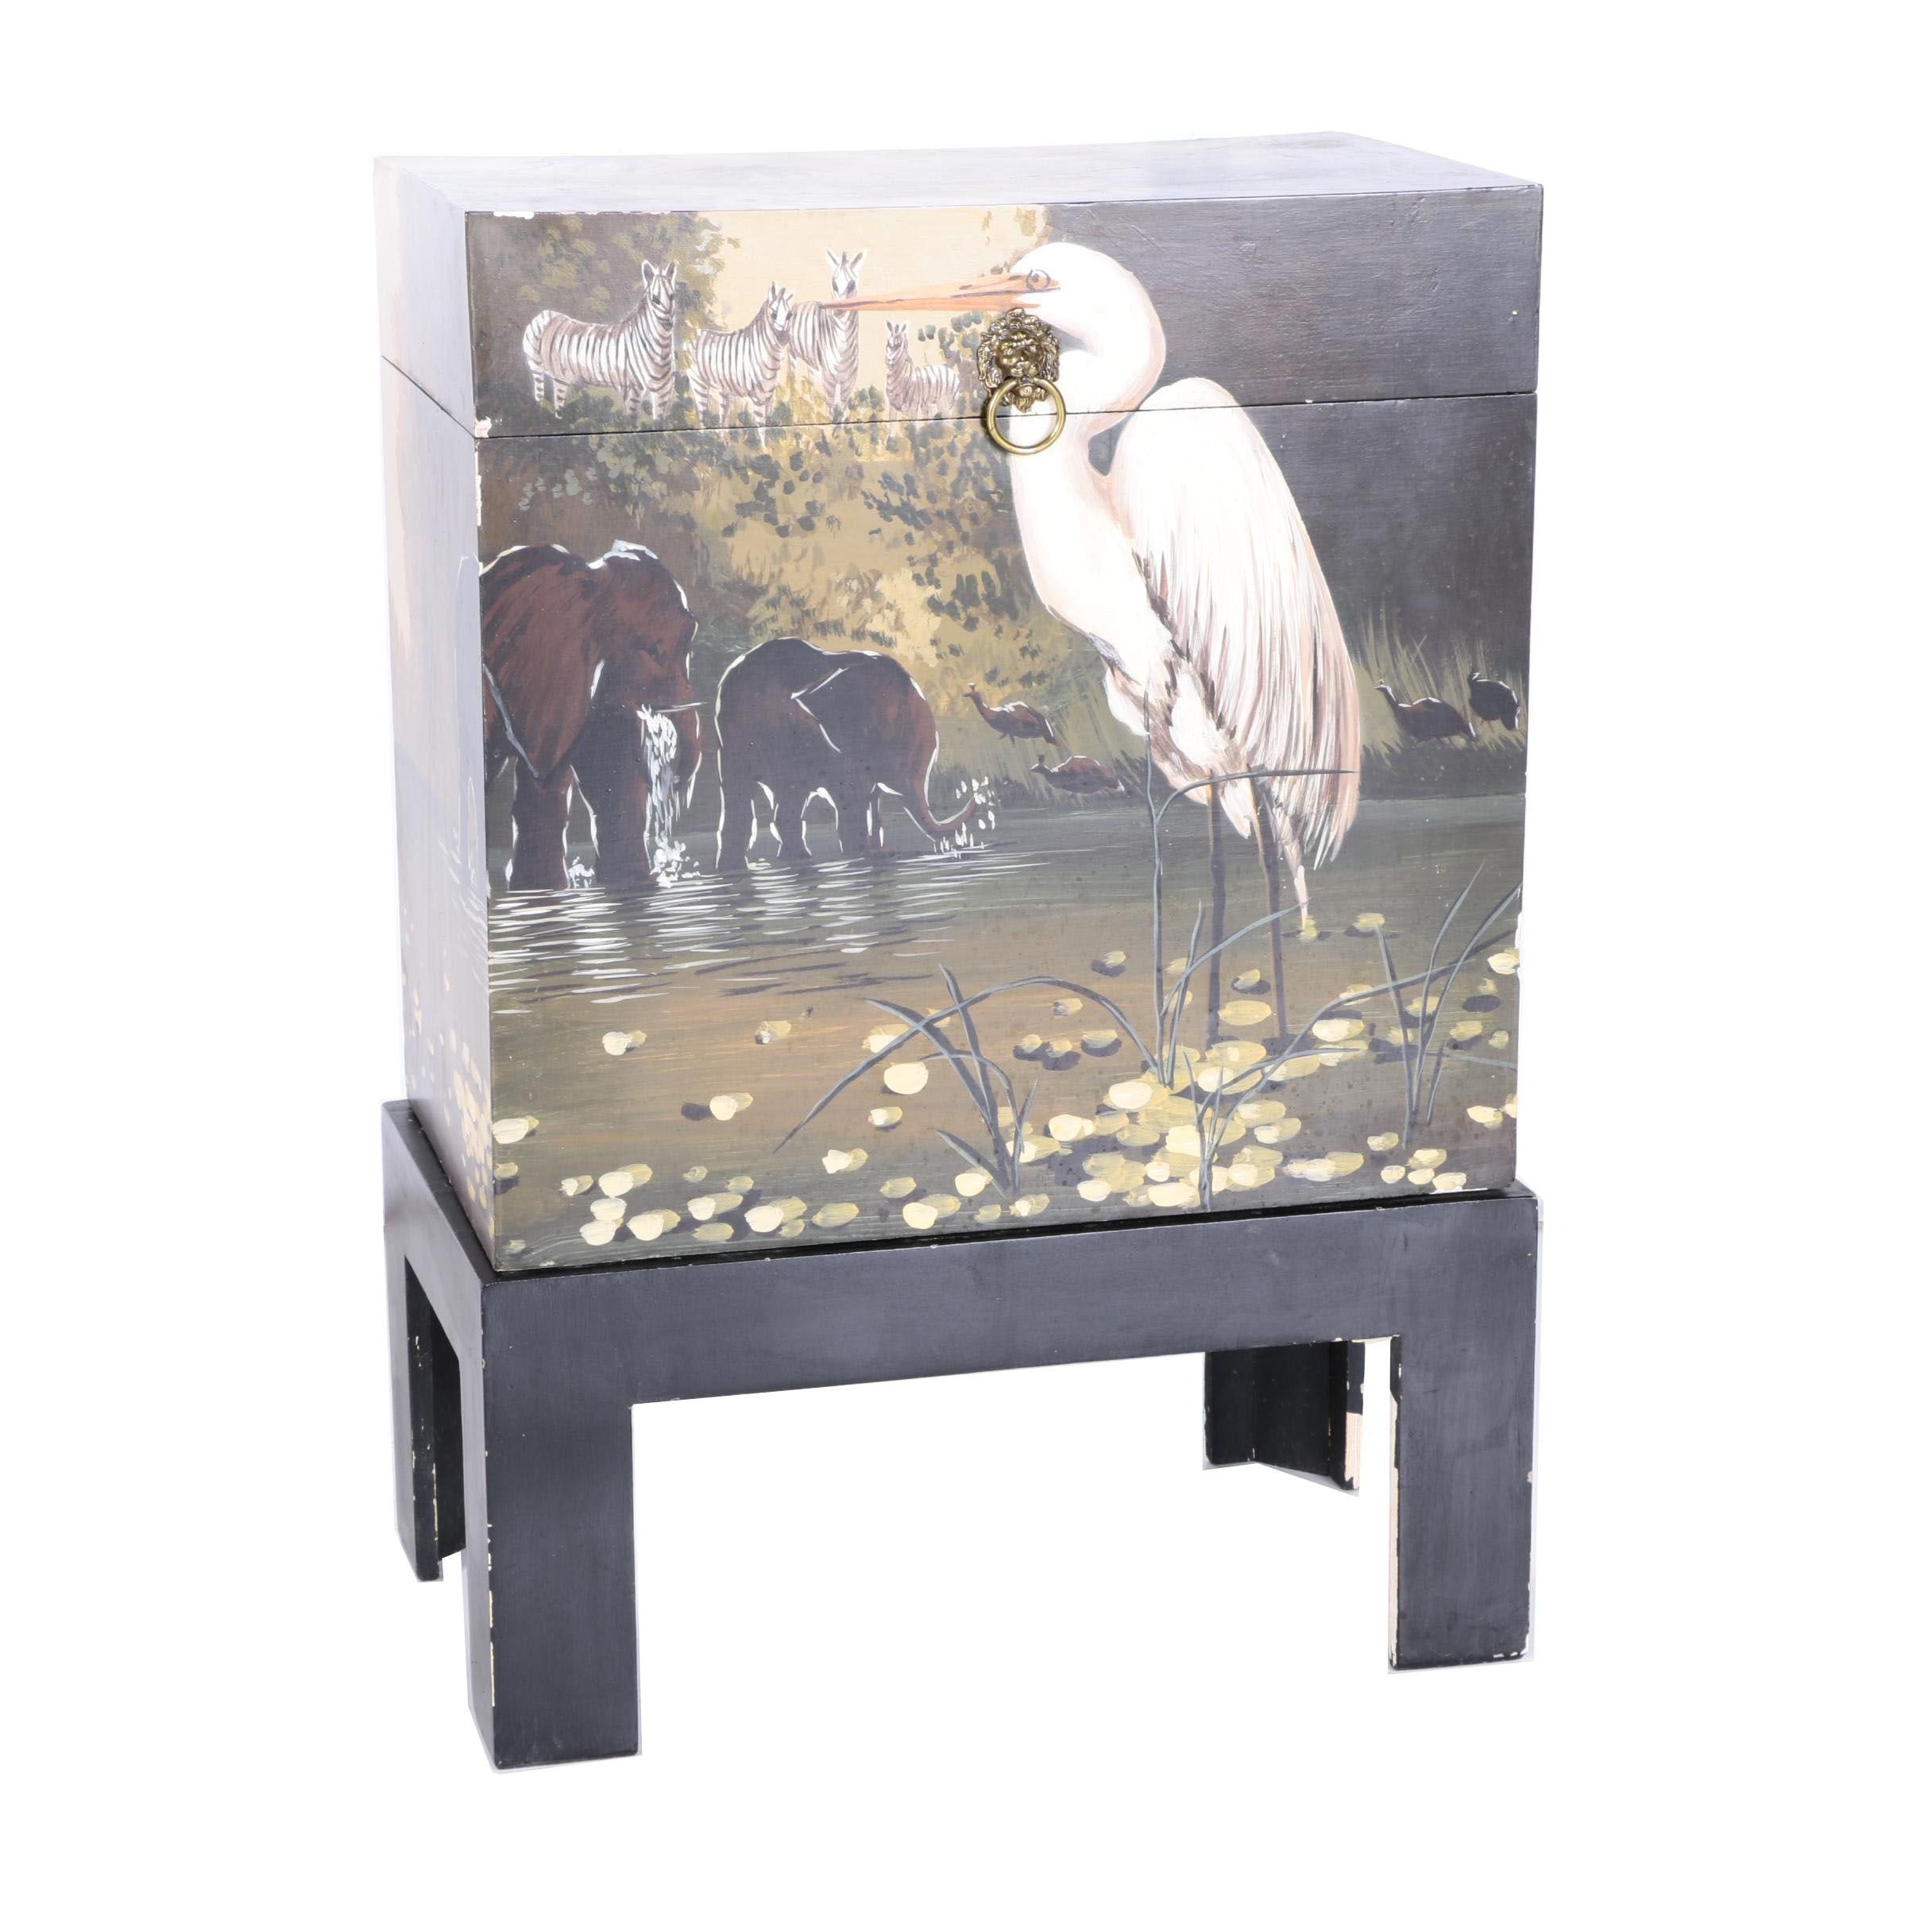 Animal-Themed Storage Chest on Stand